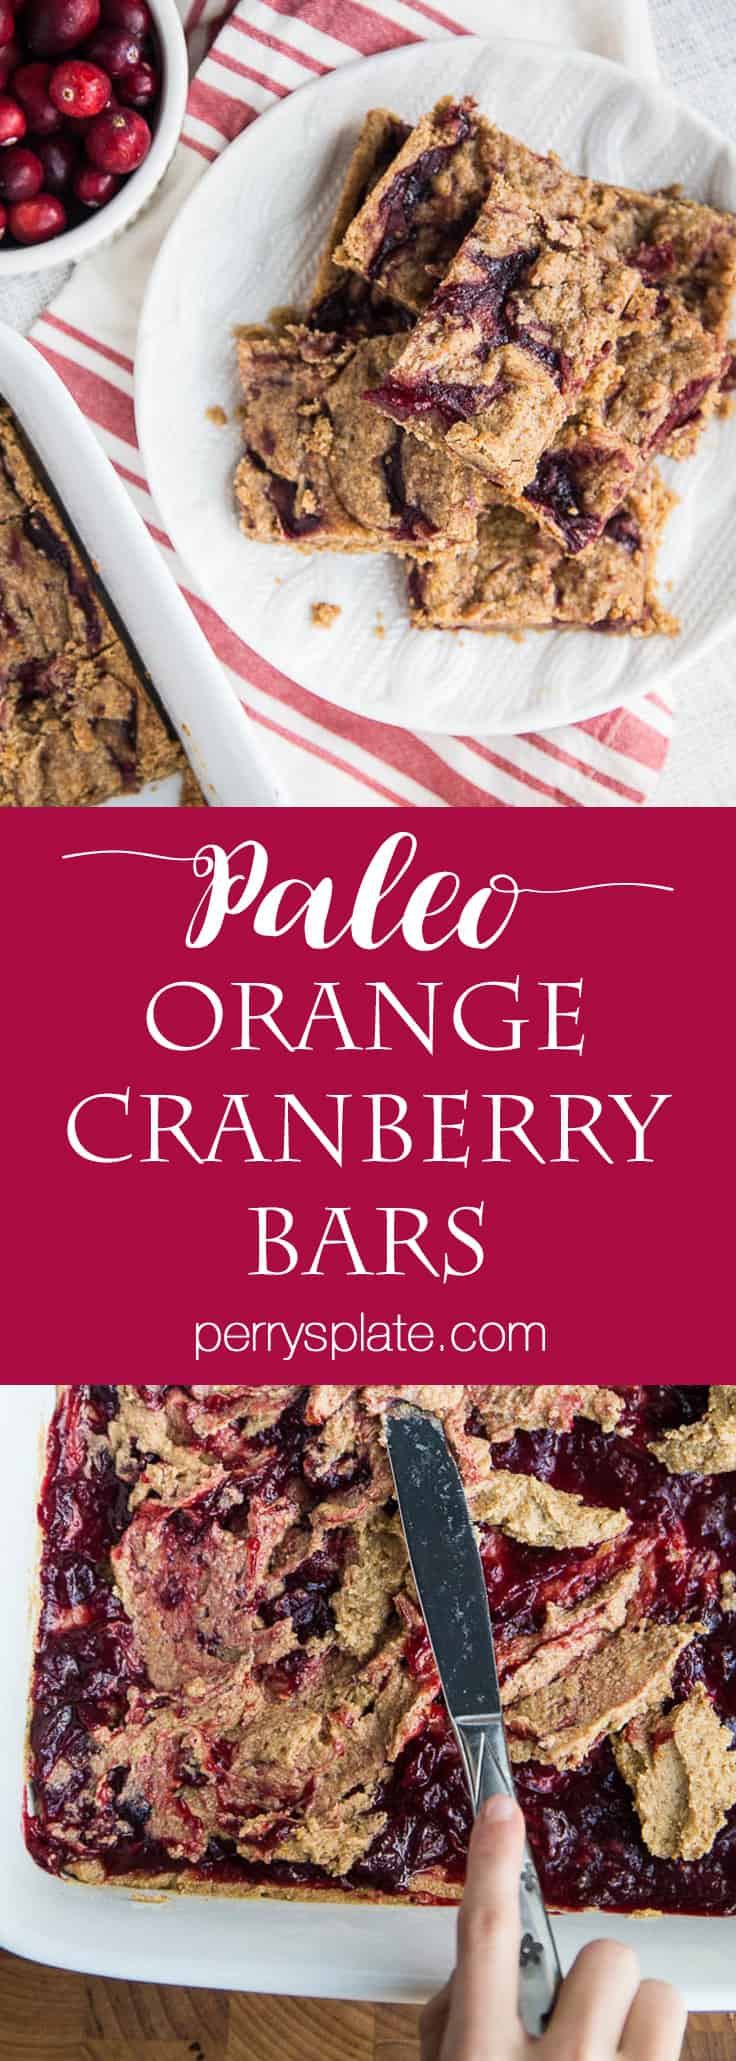 Paleo Orange Cranberry Bars | paleo dessert recipes | leftover cranberry sauce recipes | orange recipes | gluten-free recipes | dairy-free recipes | perrysplate.com